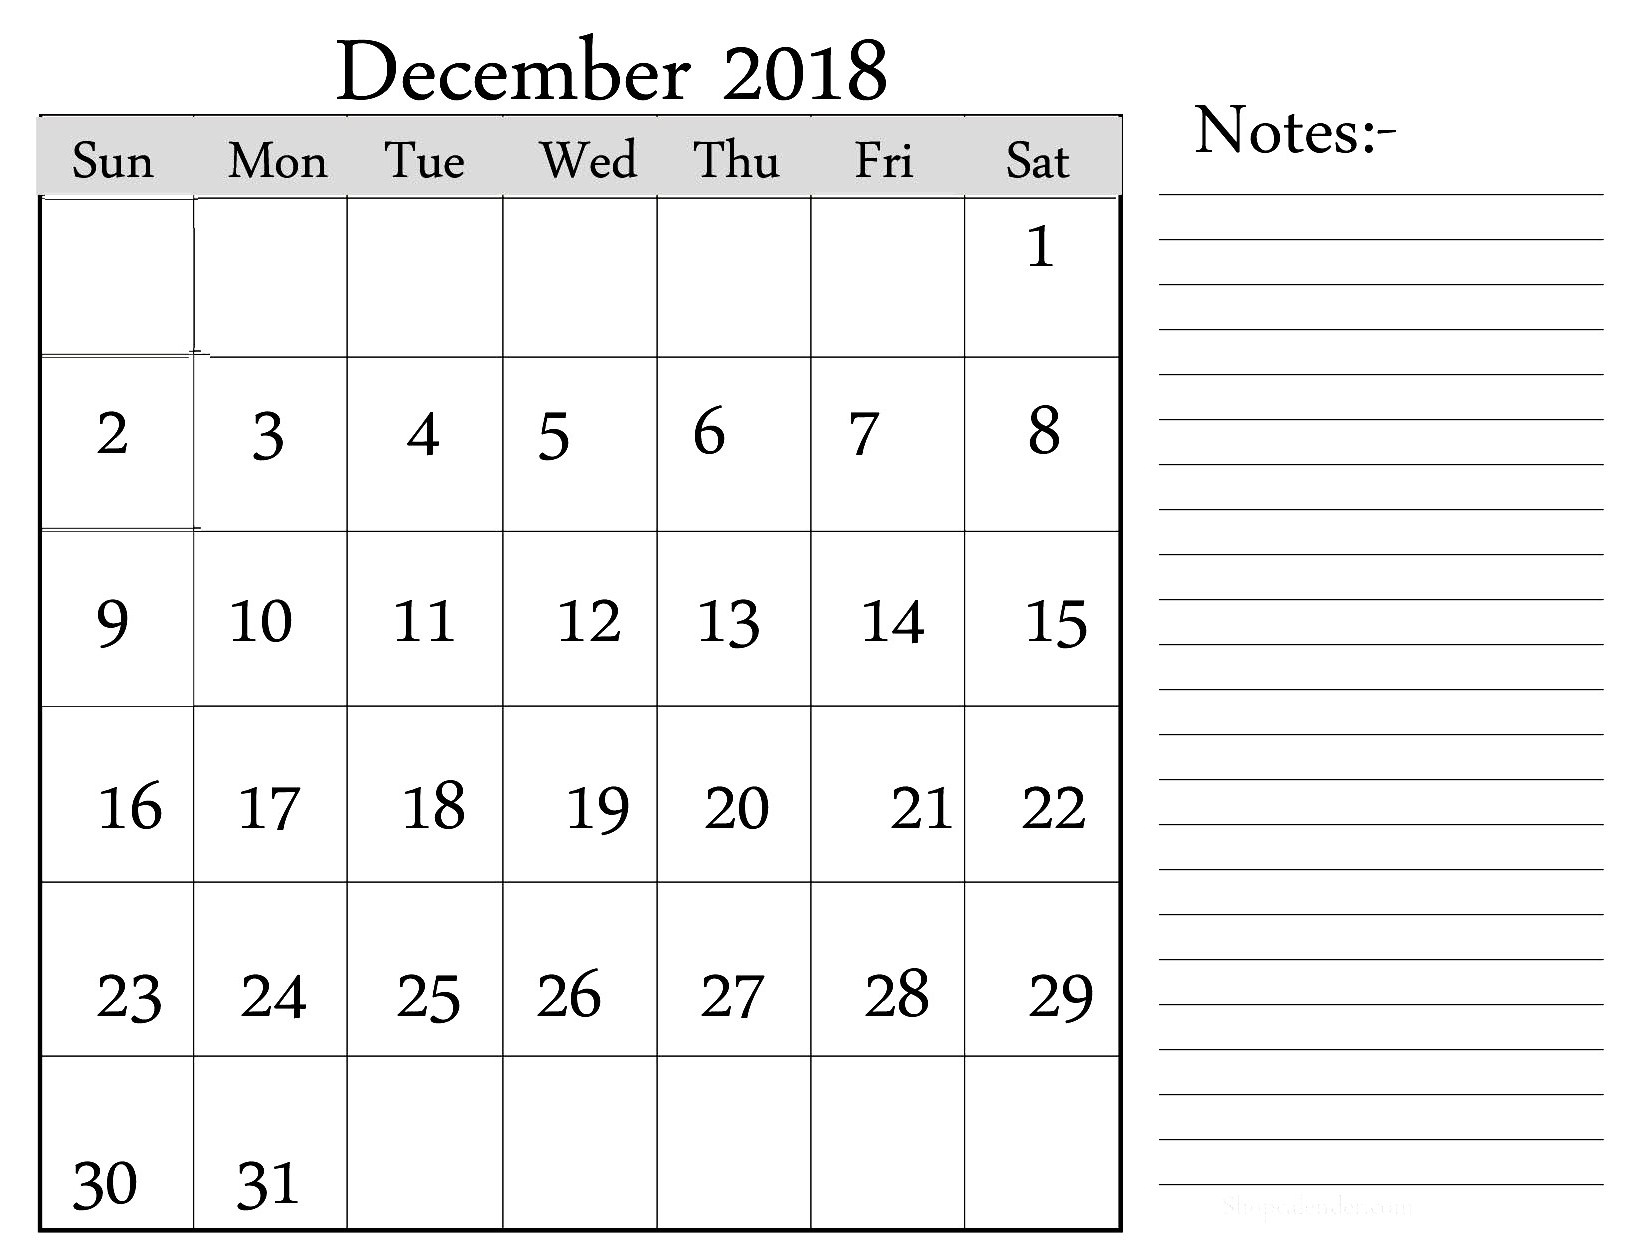 december 2018 calendar notes printable calendar printable with::December 2018 Calendar Printable Template USA UK Canada